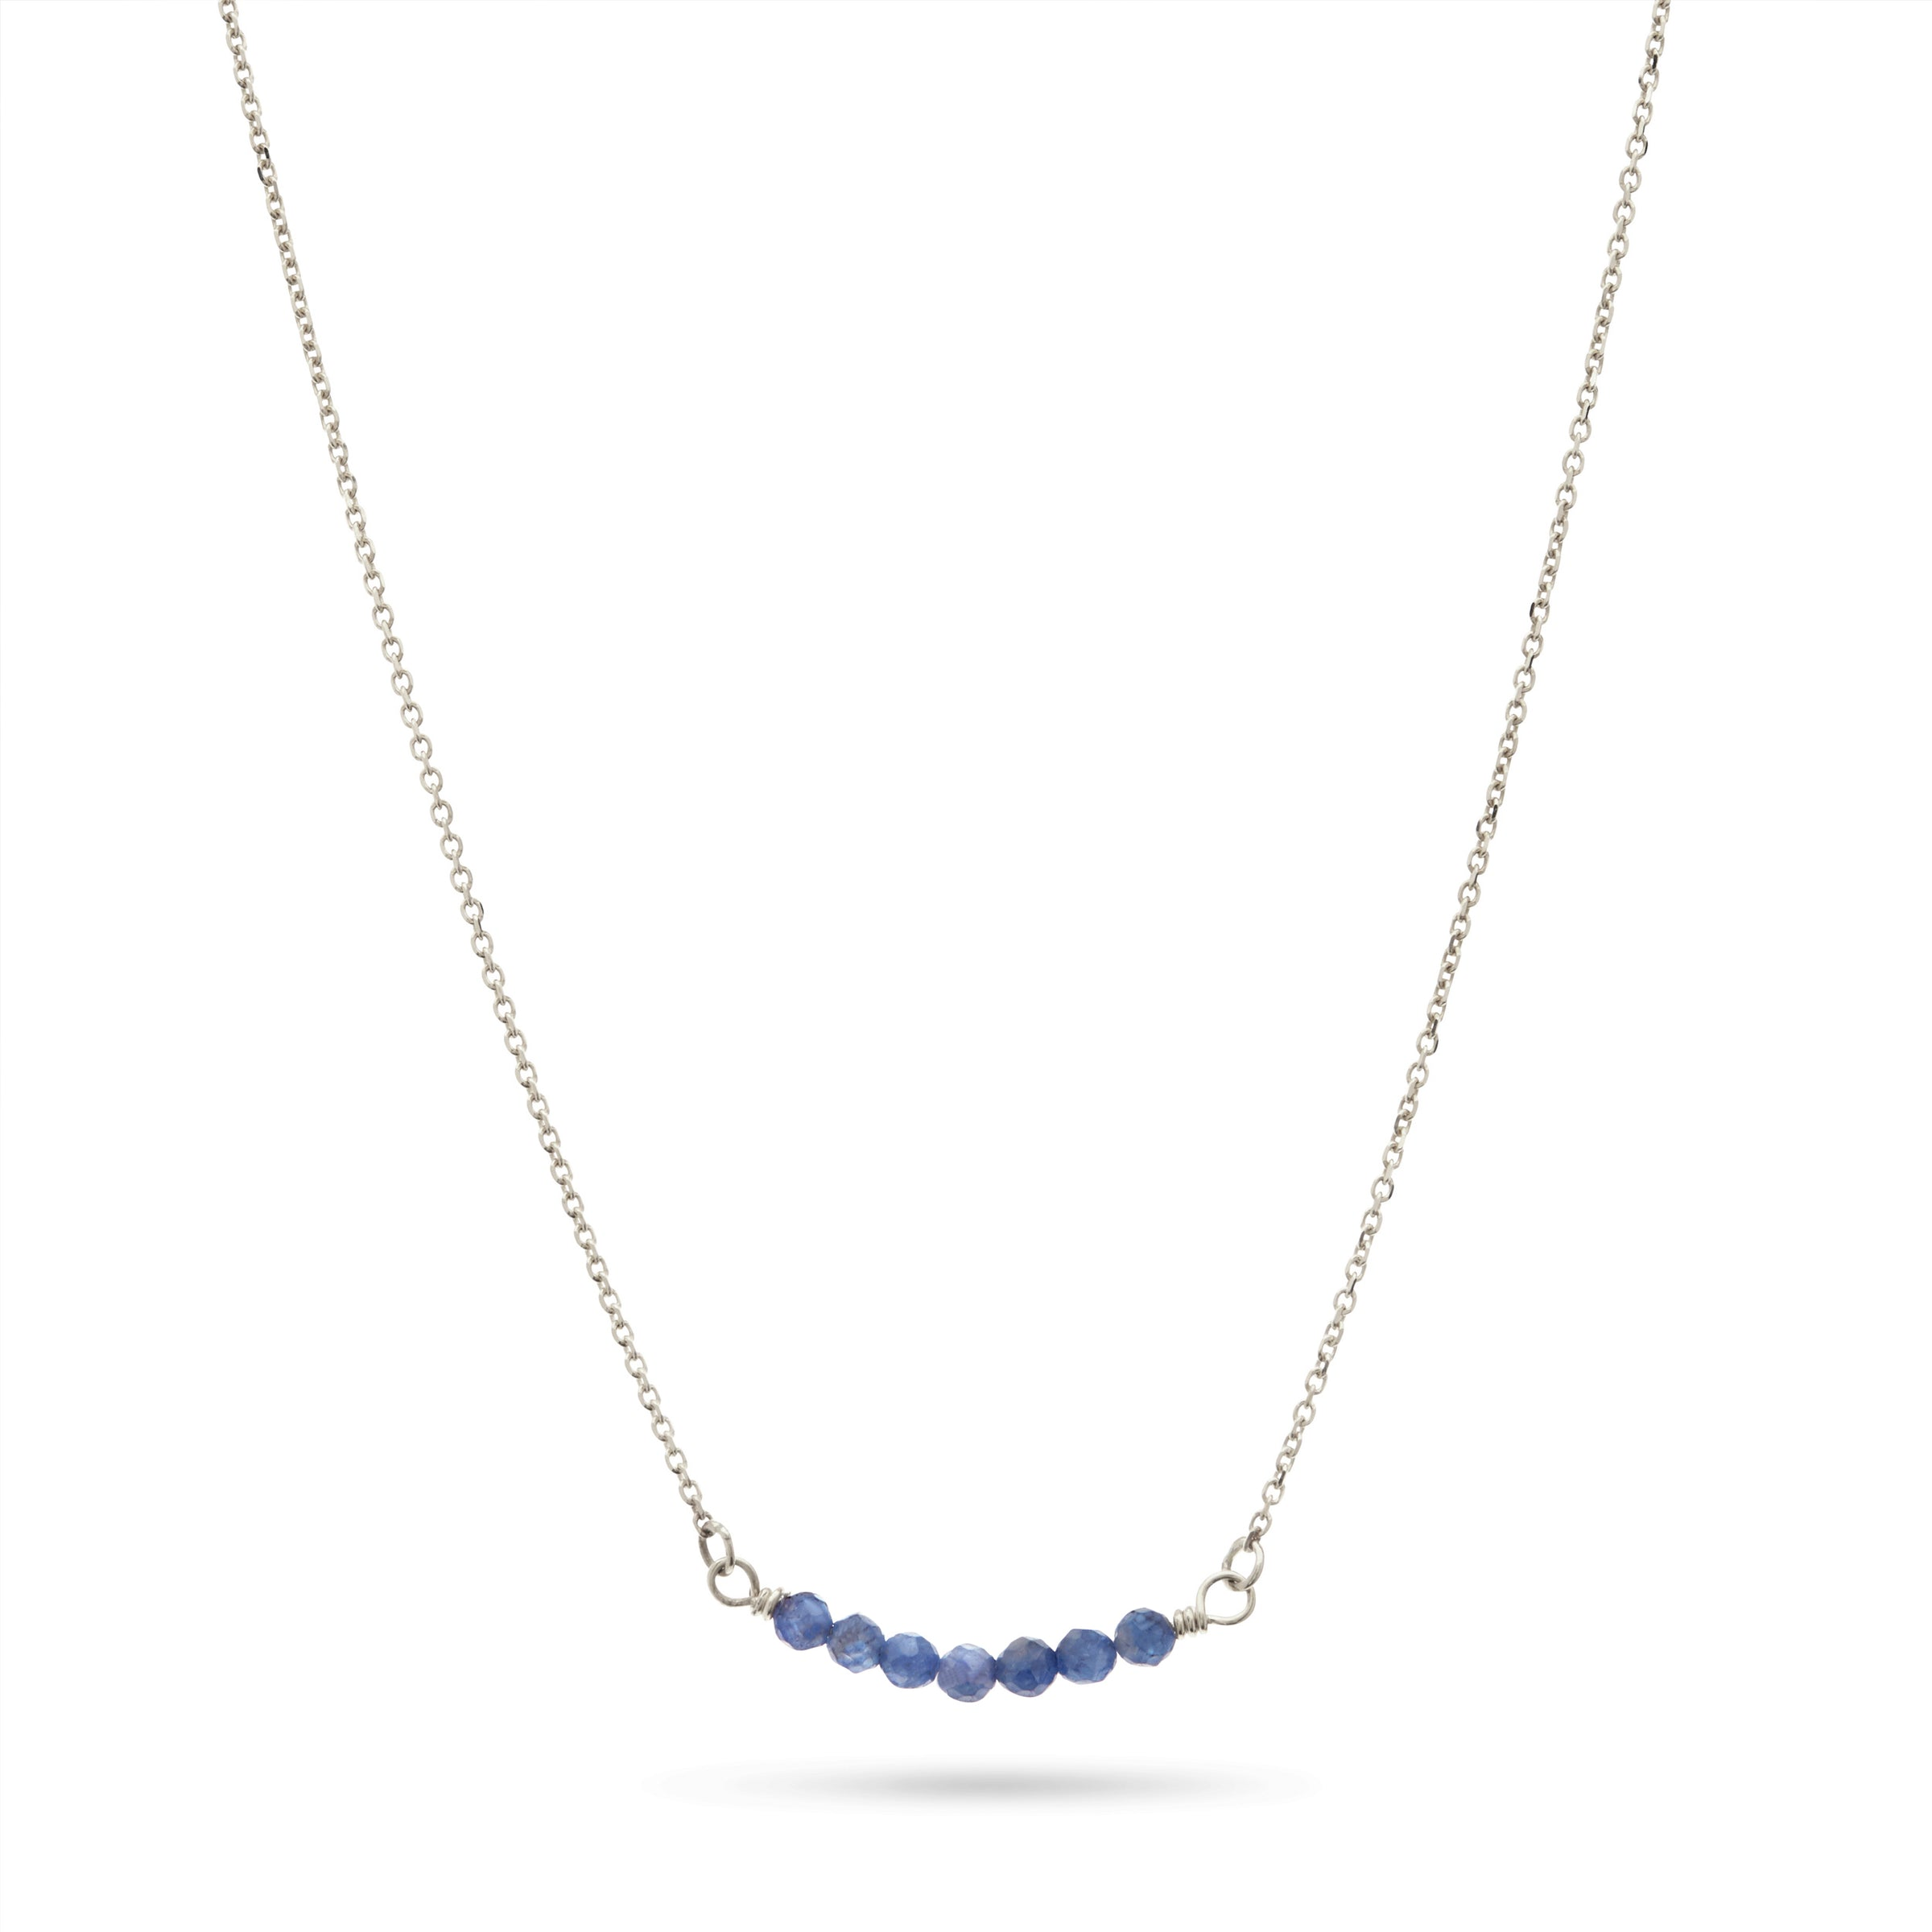 Silver Sapphire Necklace by Luke Rose